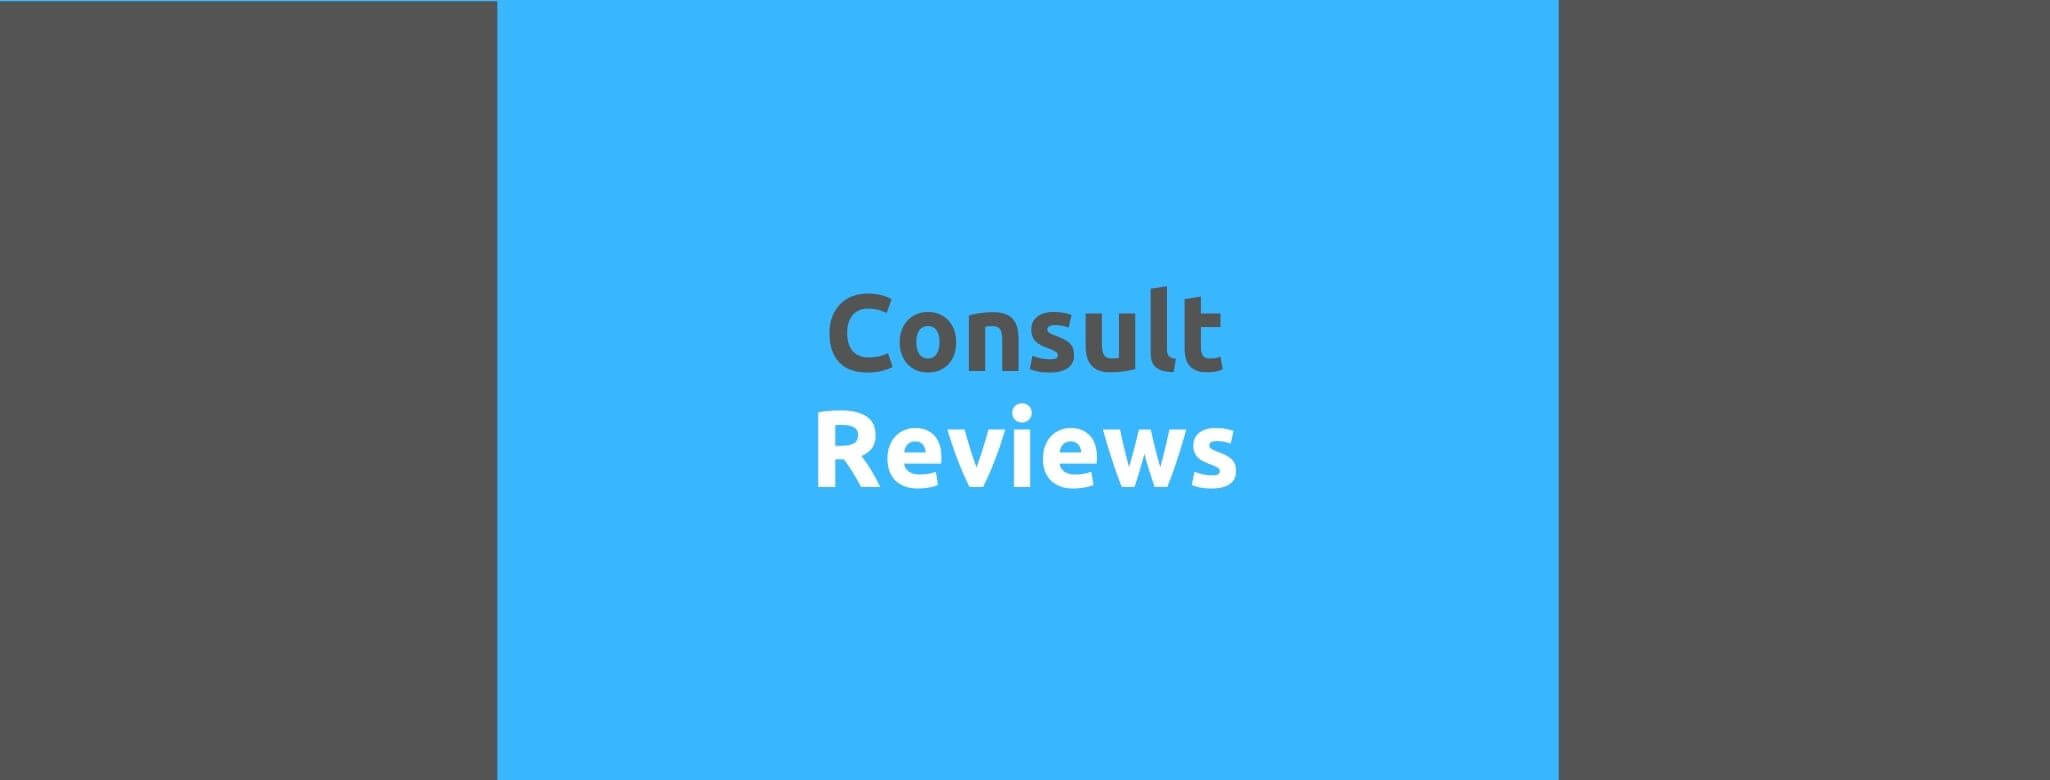 Consult Reviews - 35 Things Every Seller Should Do to Offer Great Customer Service - Replyco Helpdesk Software for eCommerce